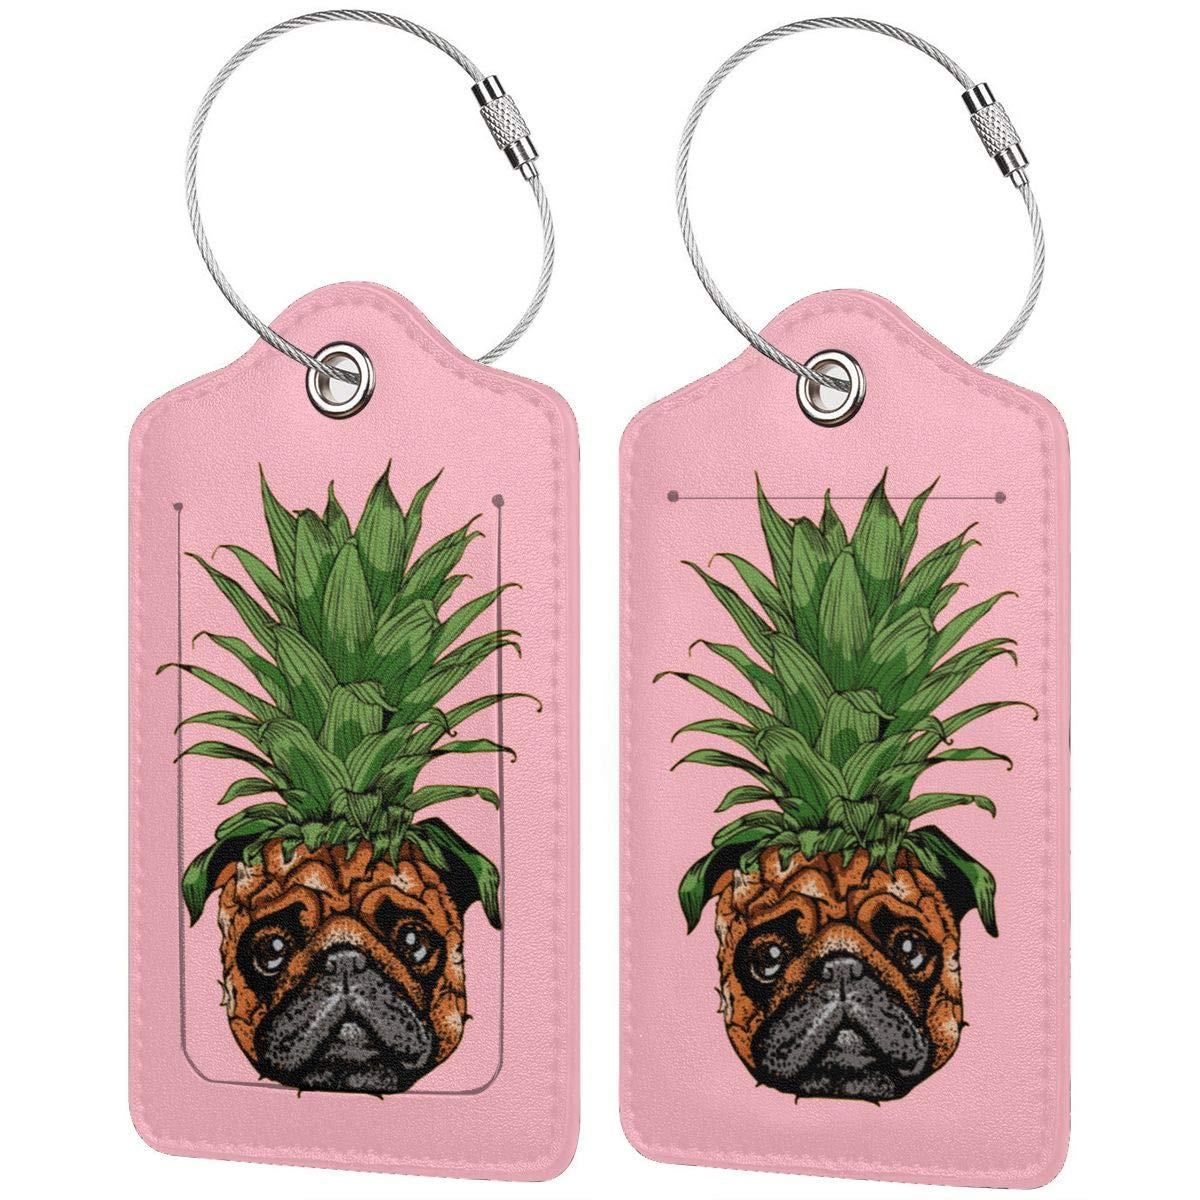 Pineapple Pug Leather Luggage Tags Suitcase Tag Travel Bag Labels With Privacy Cover For Men Women 2 Pack 4 Pack